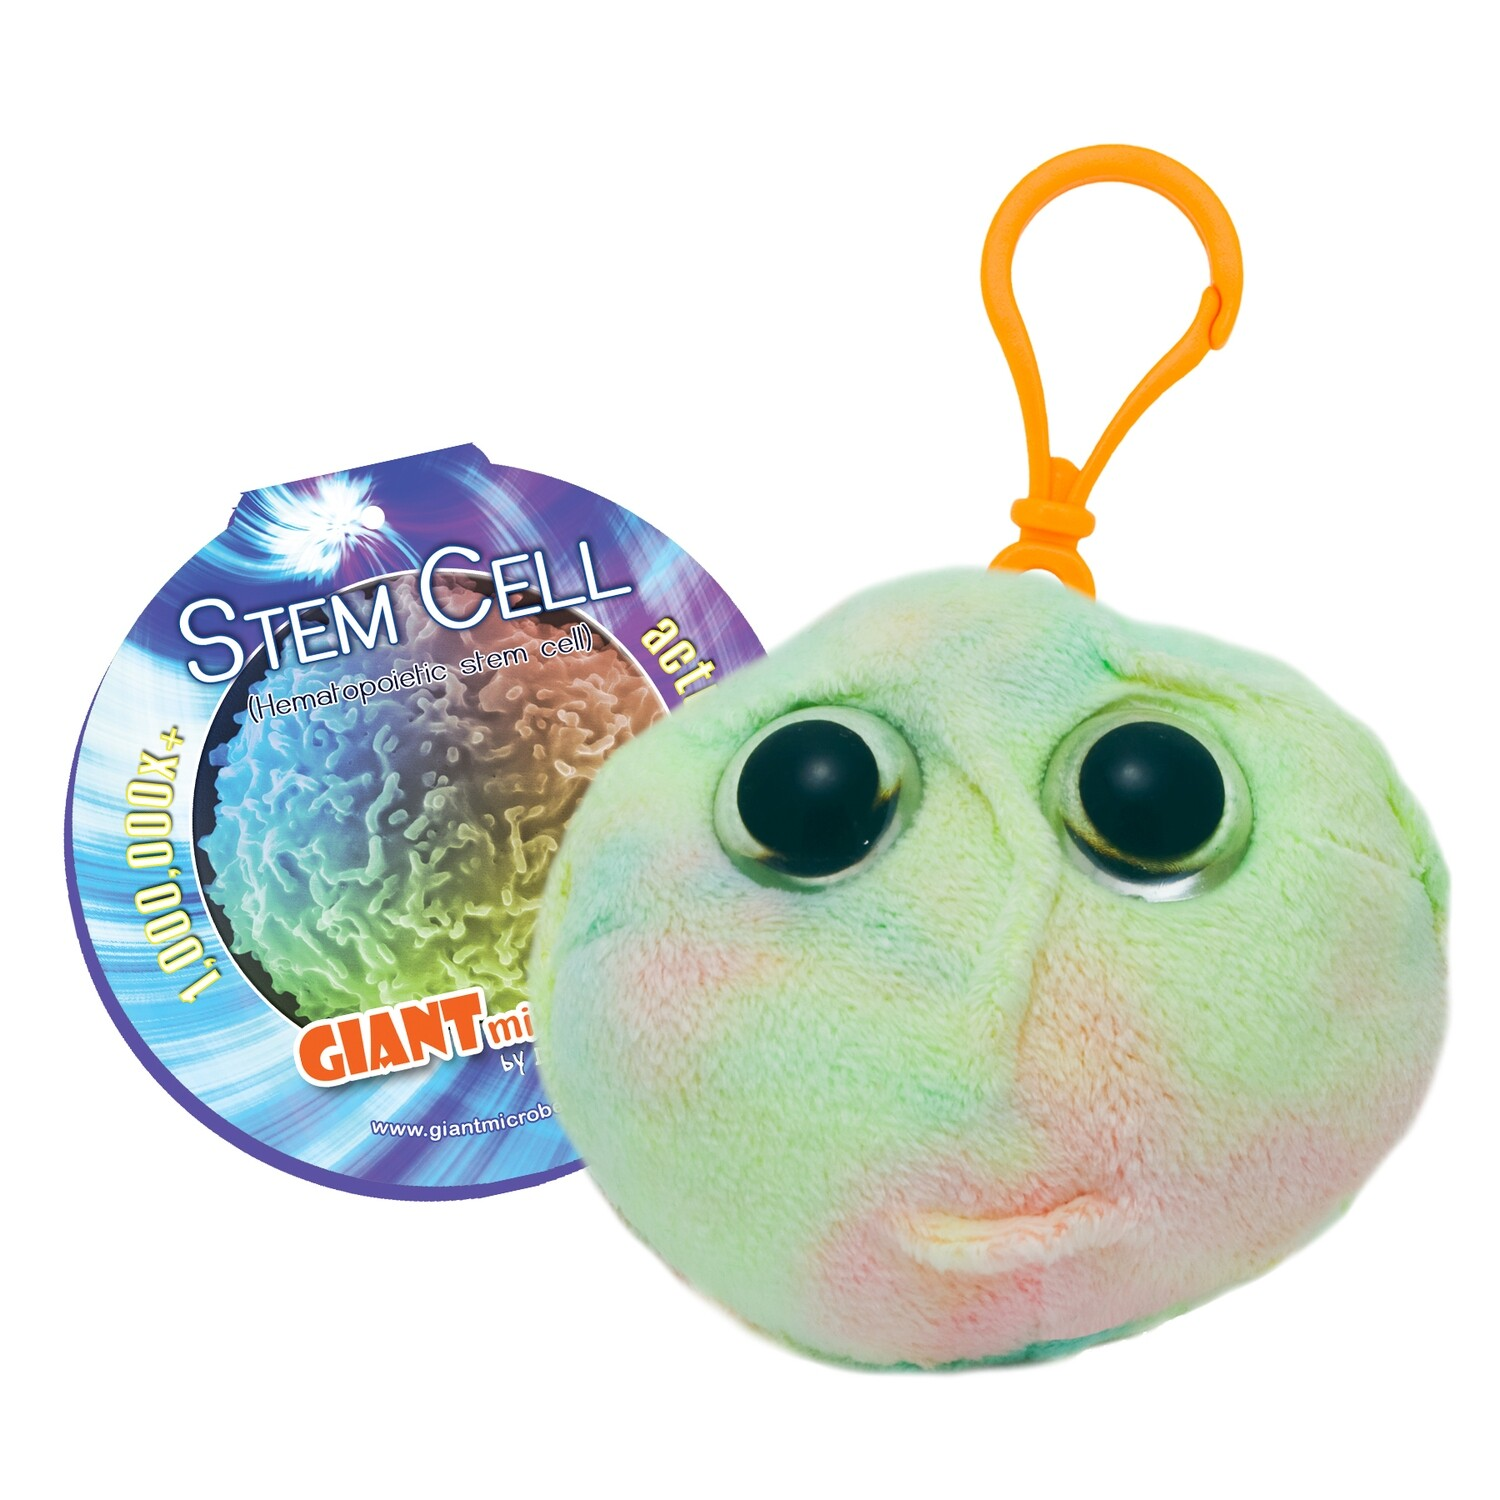 Giant Microbes KeyChain - Stem Cell